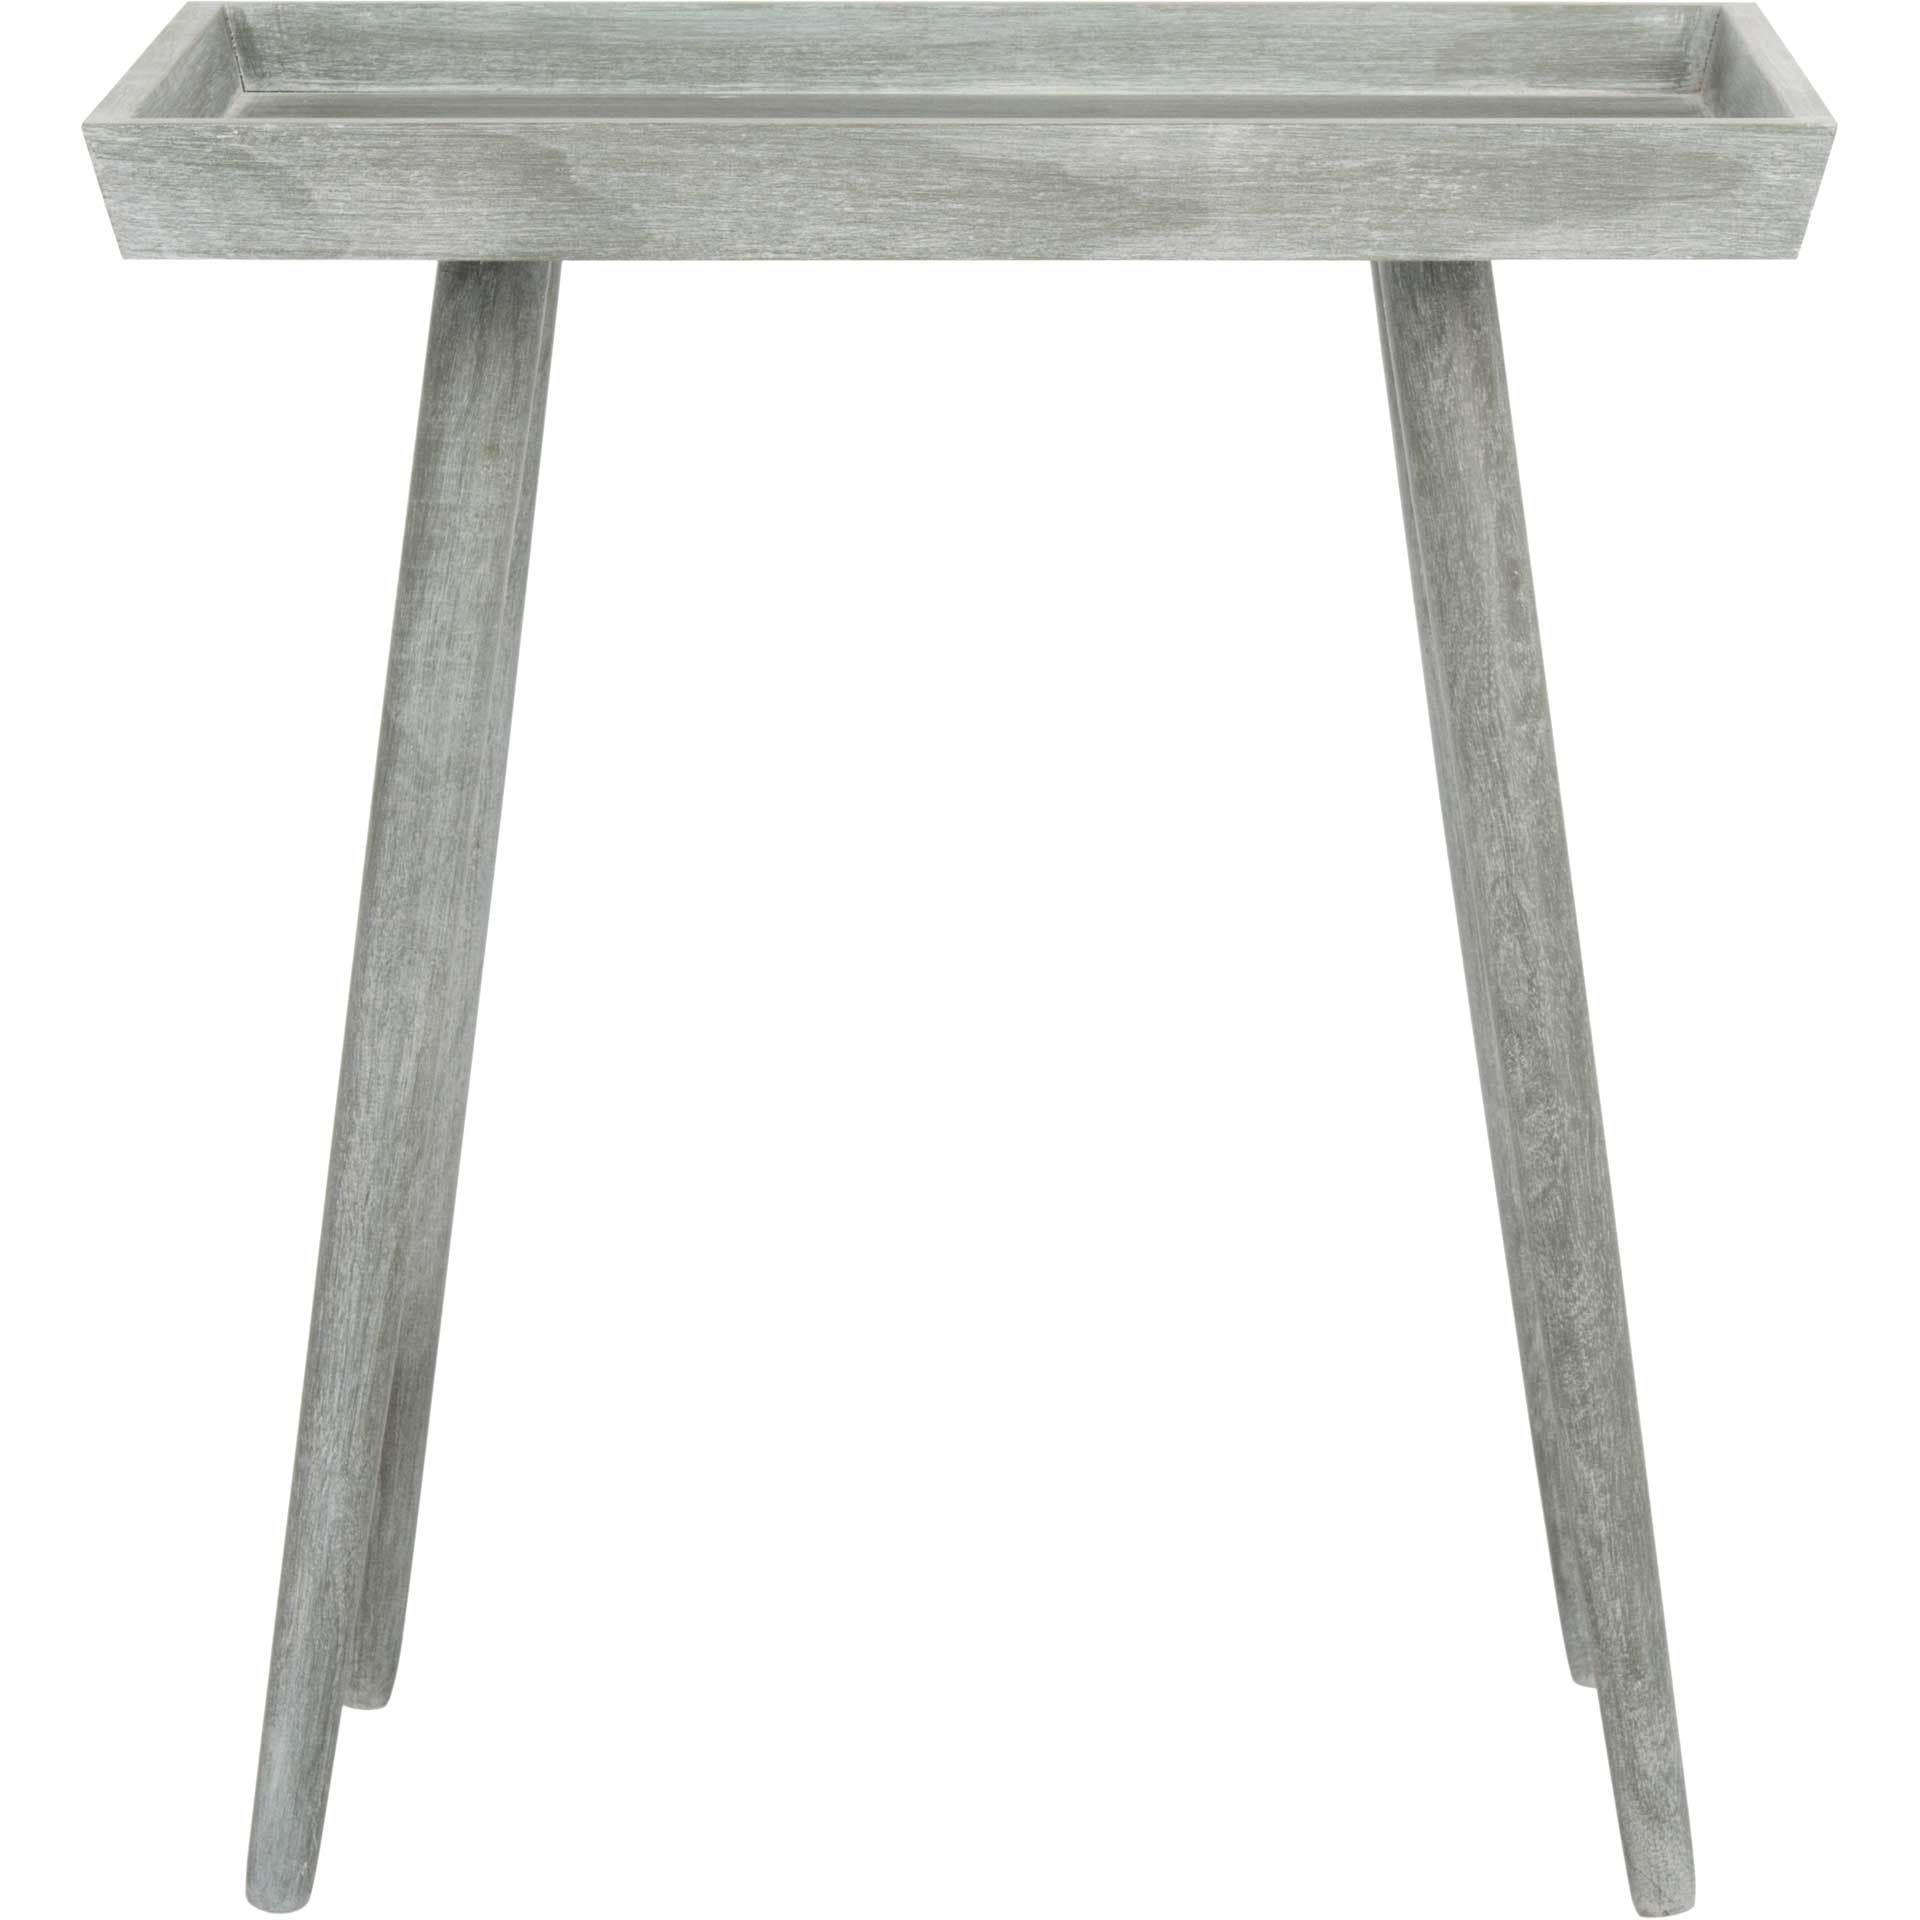 nonie tray accent table slate gray froy front metal bedside with drawer outdoor dining umbrella coffee small decorative cloths pier coupon code round tile queen frame black marble